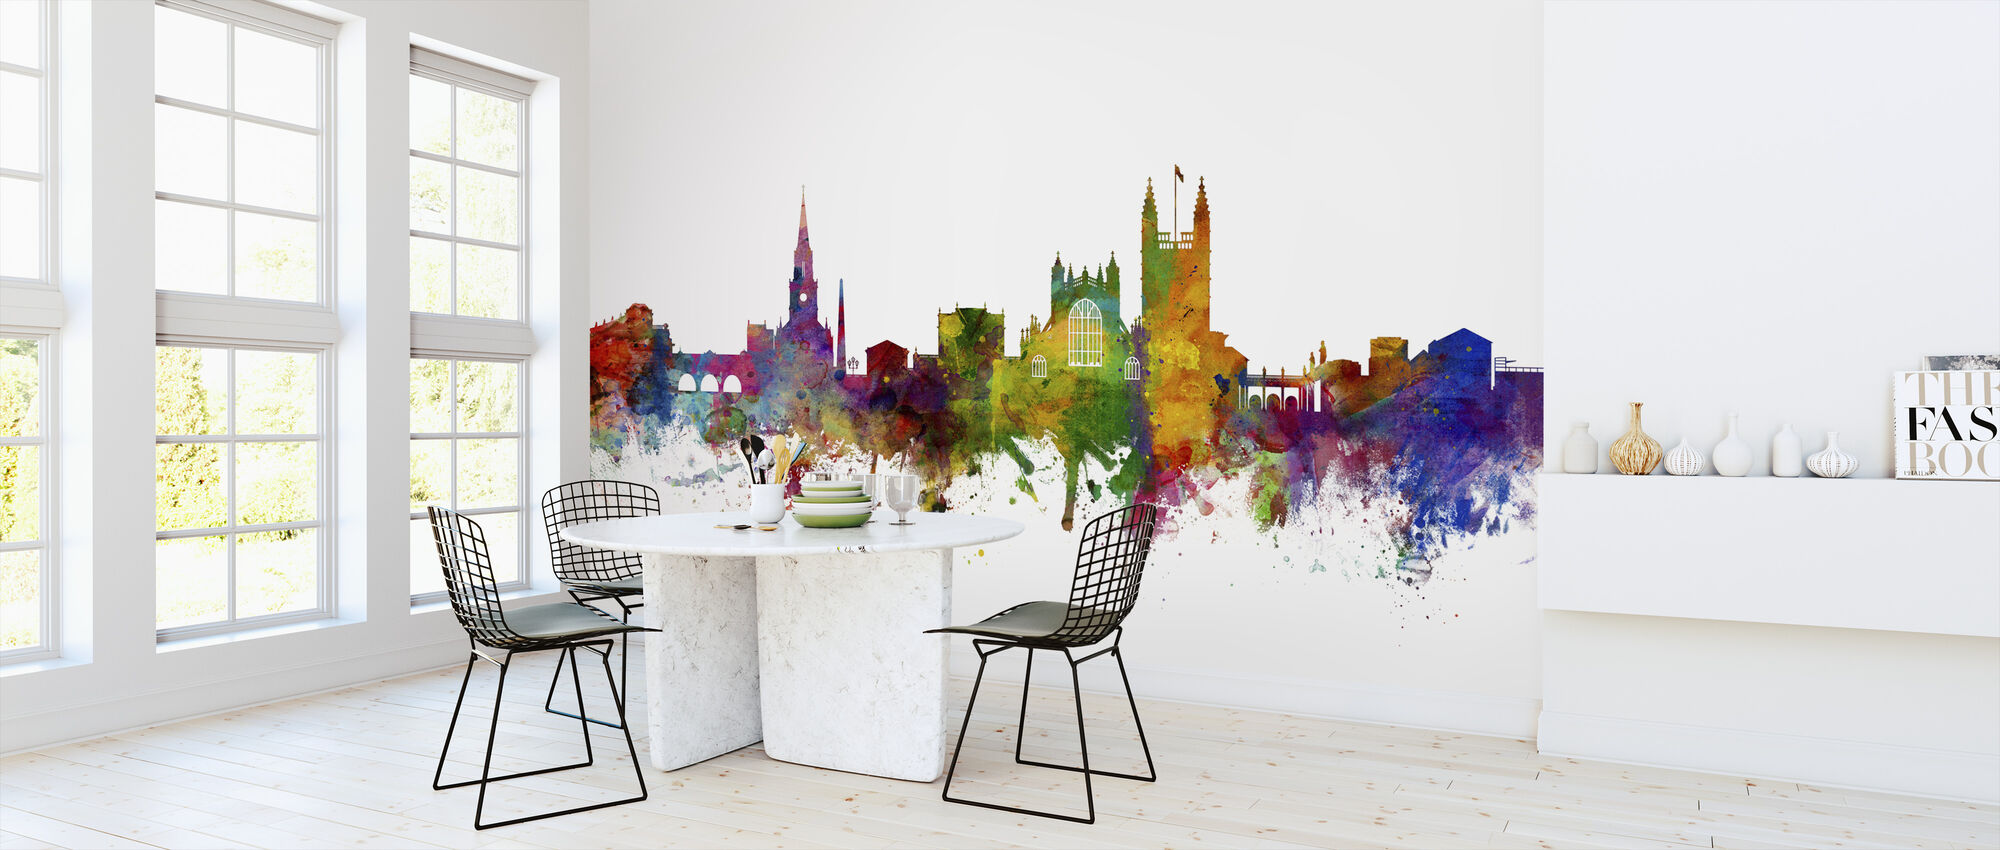 Bath England Skyline - Wallpaper - Kitchen